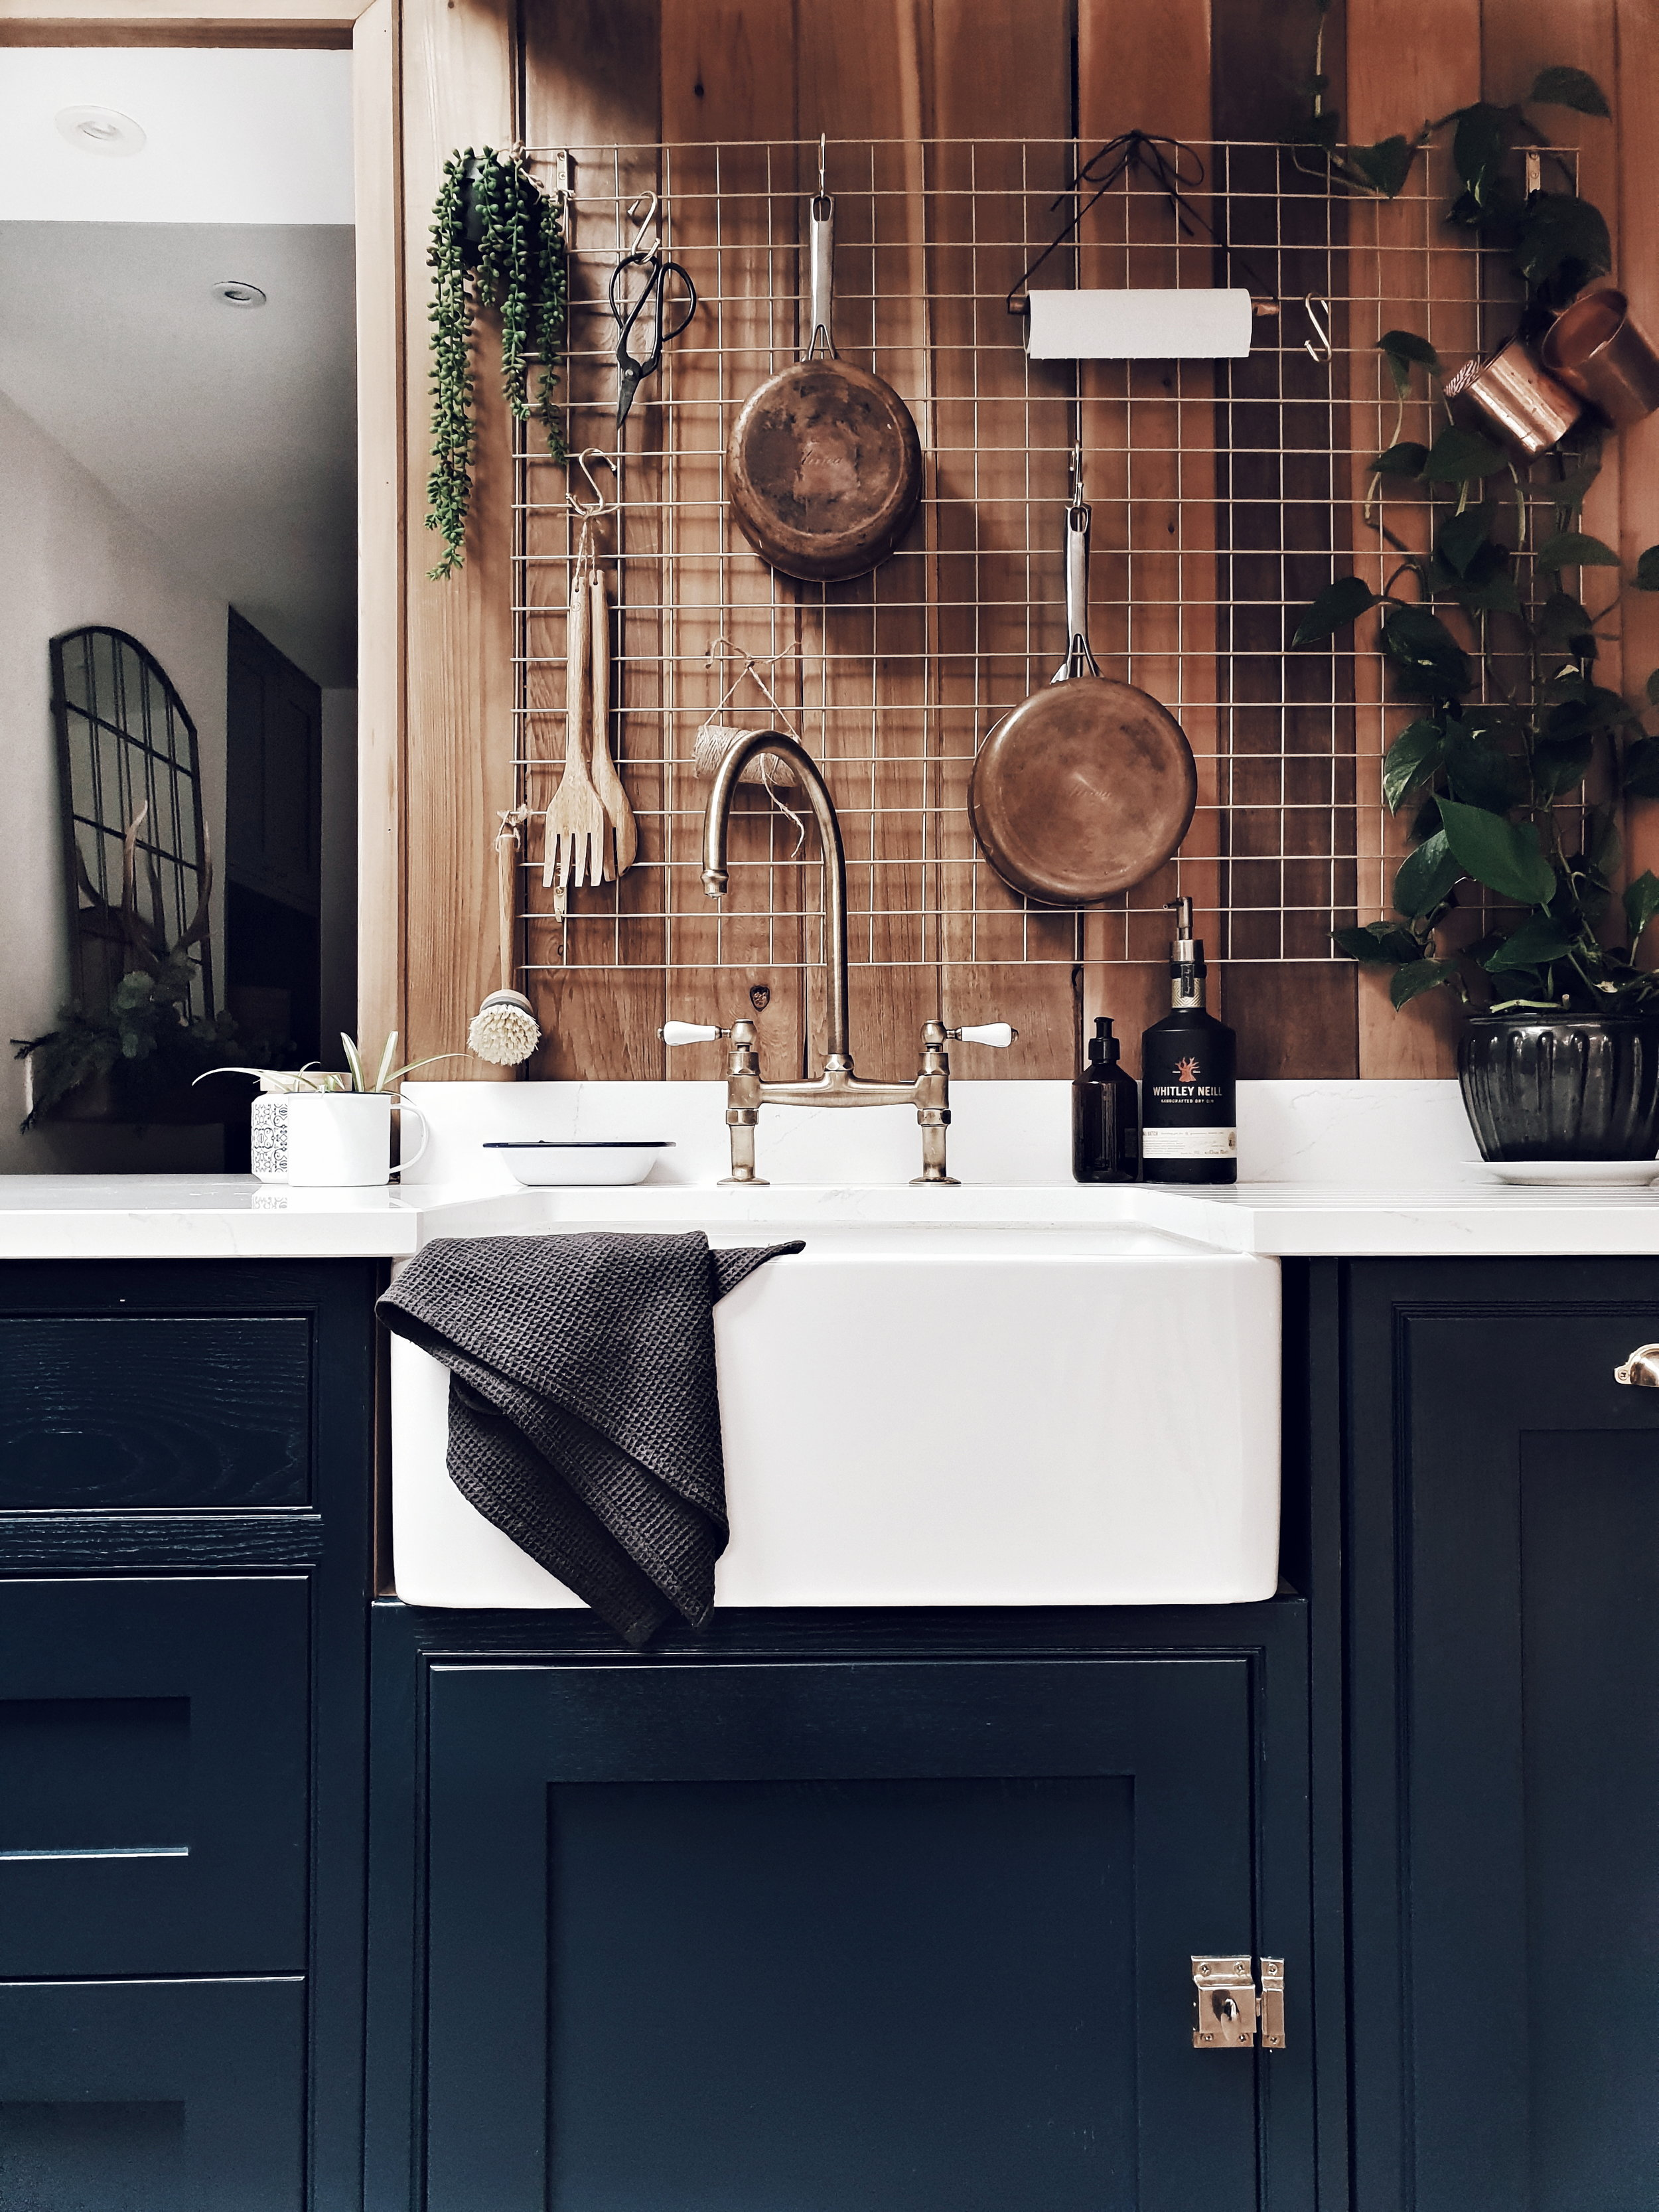 The brass tap and wire grid are both ideas (and things) I wanted to steal from Maz's kitchen. I love their decision to make a feature of the cabinet hinges as well.